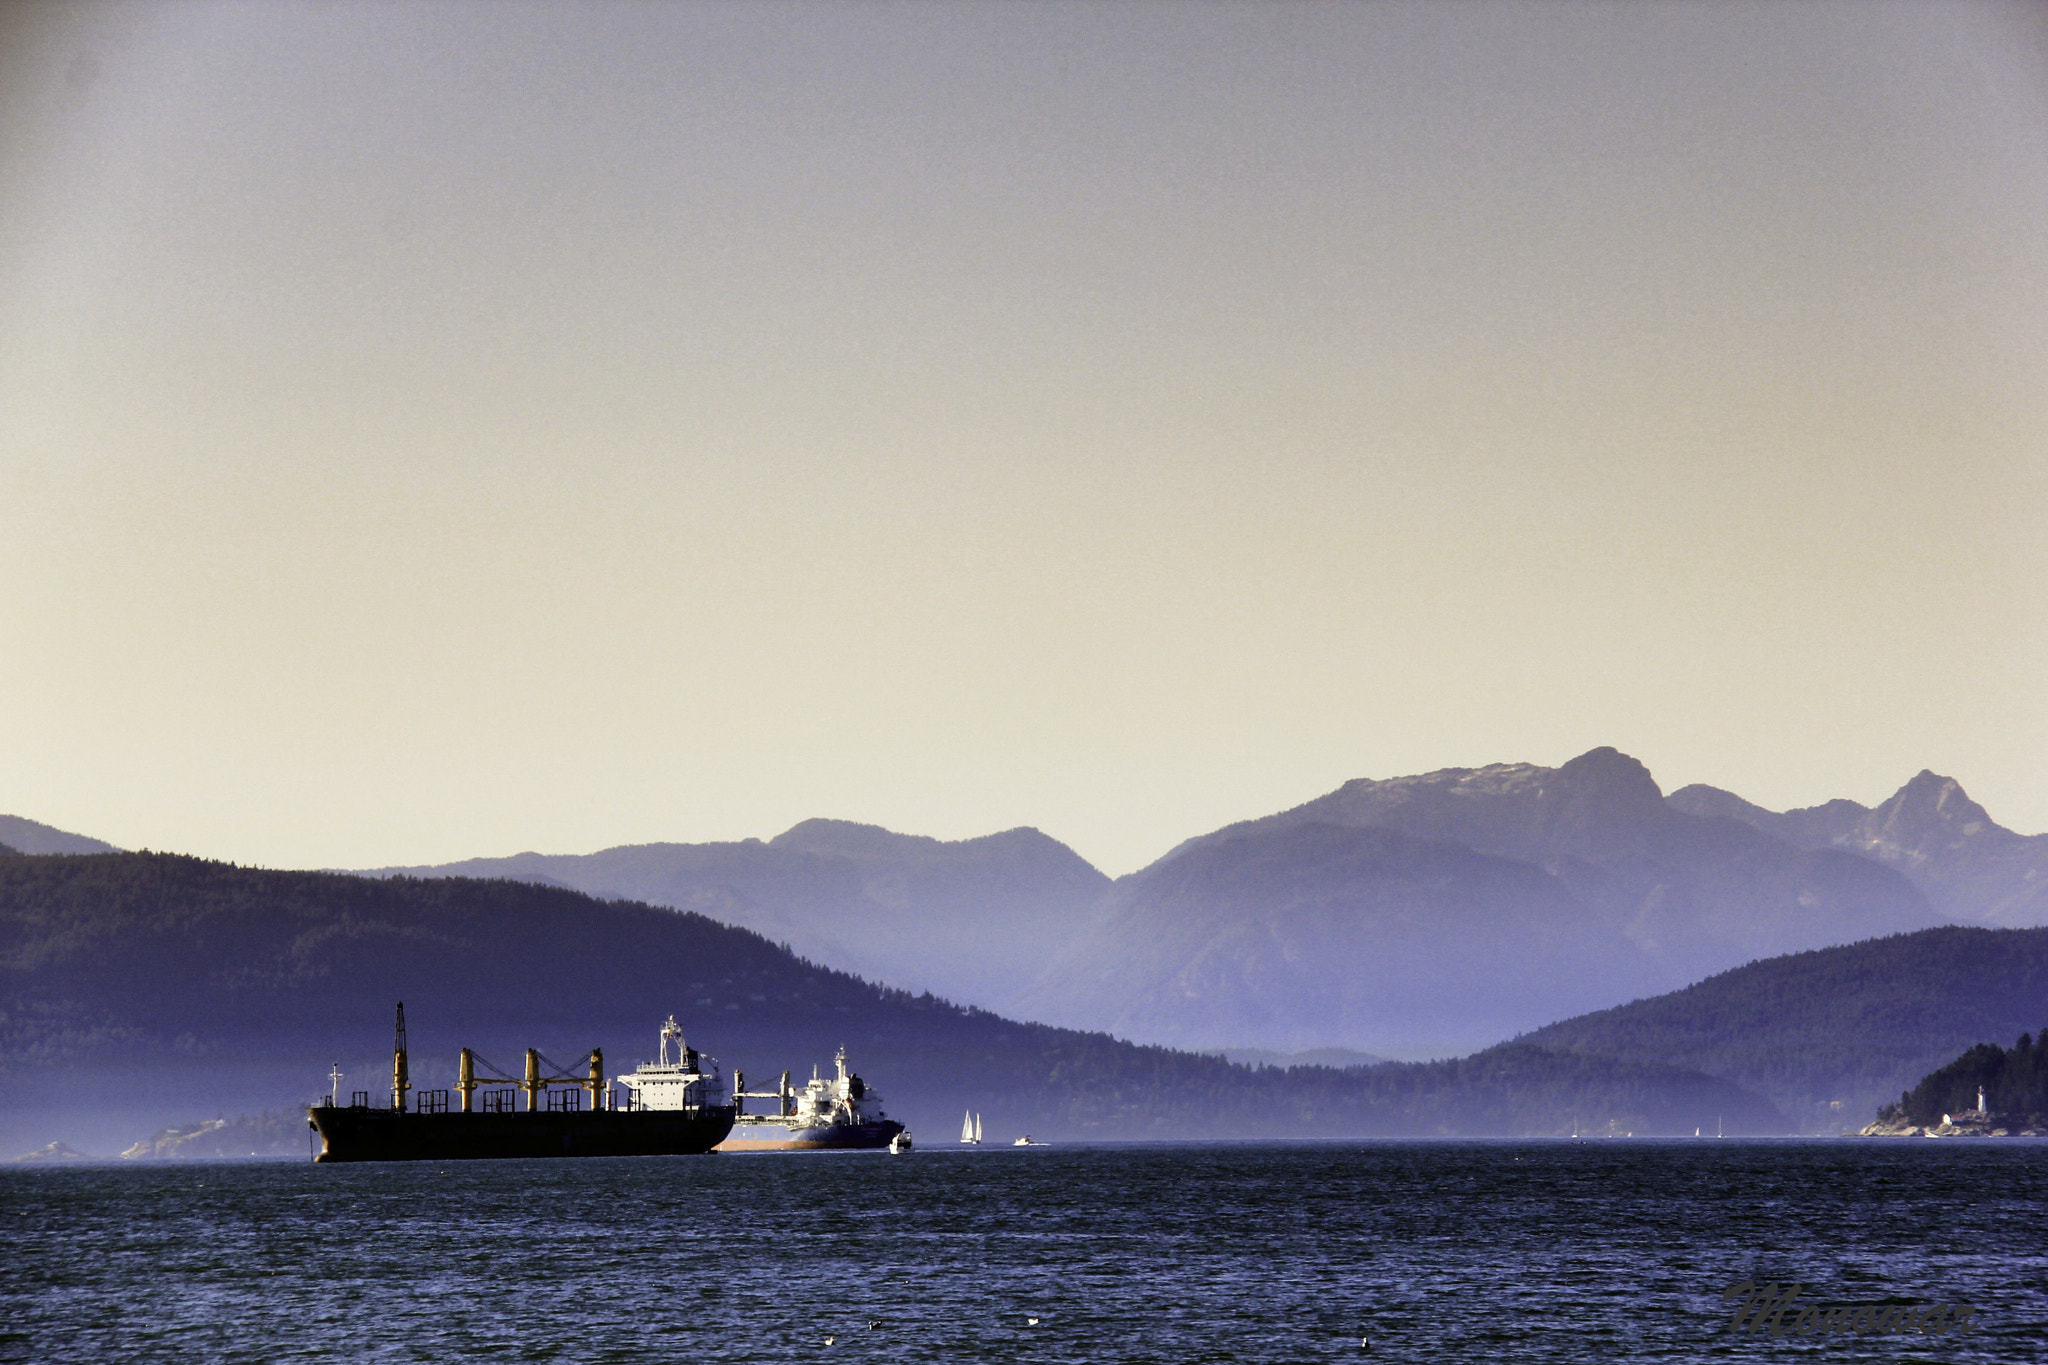 Photograph Ships & Mountain by Monowar  on 500px